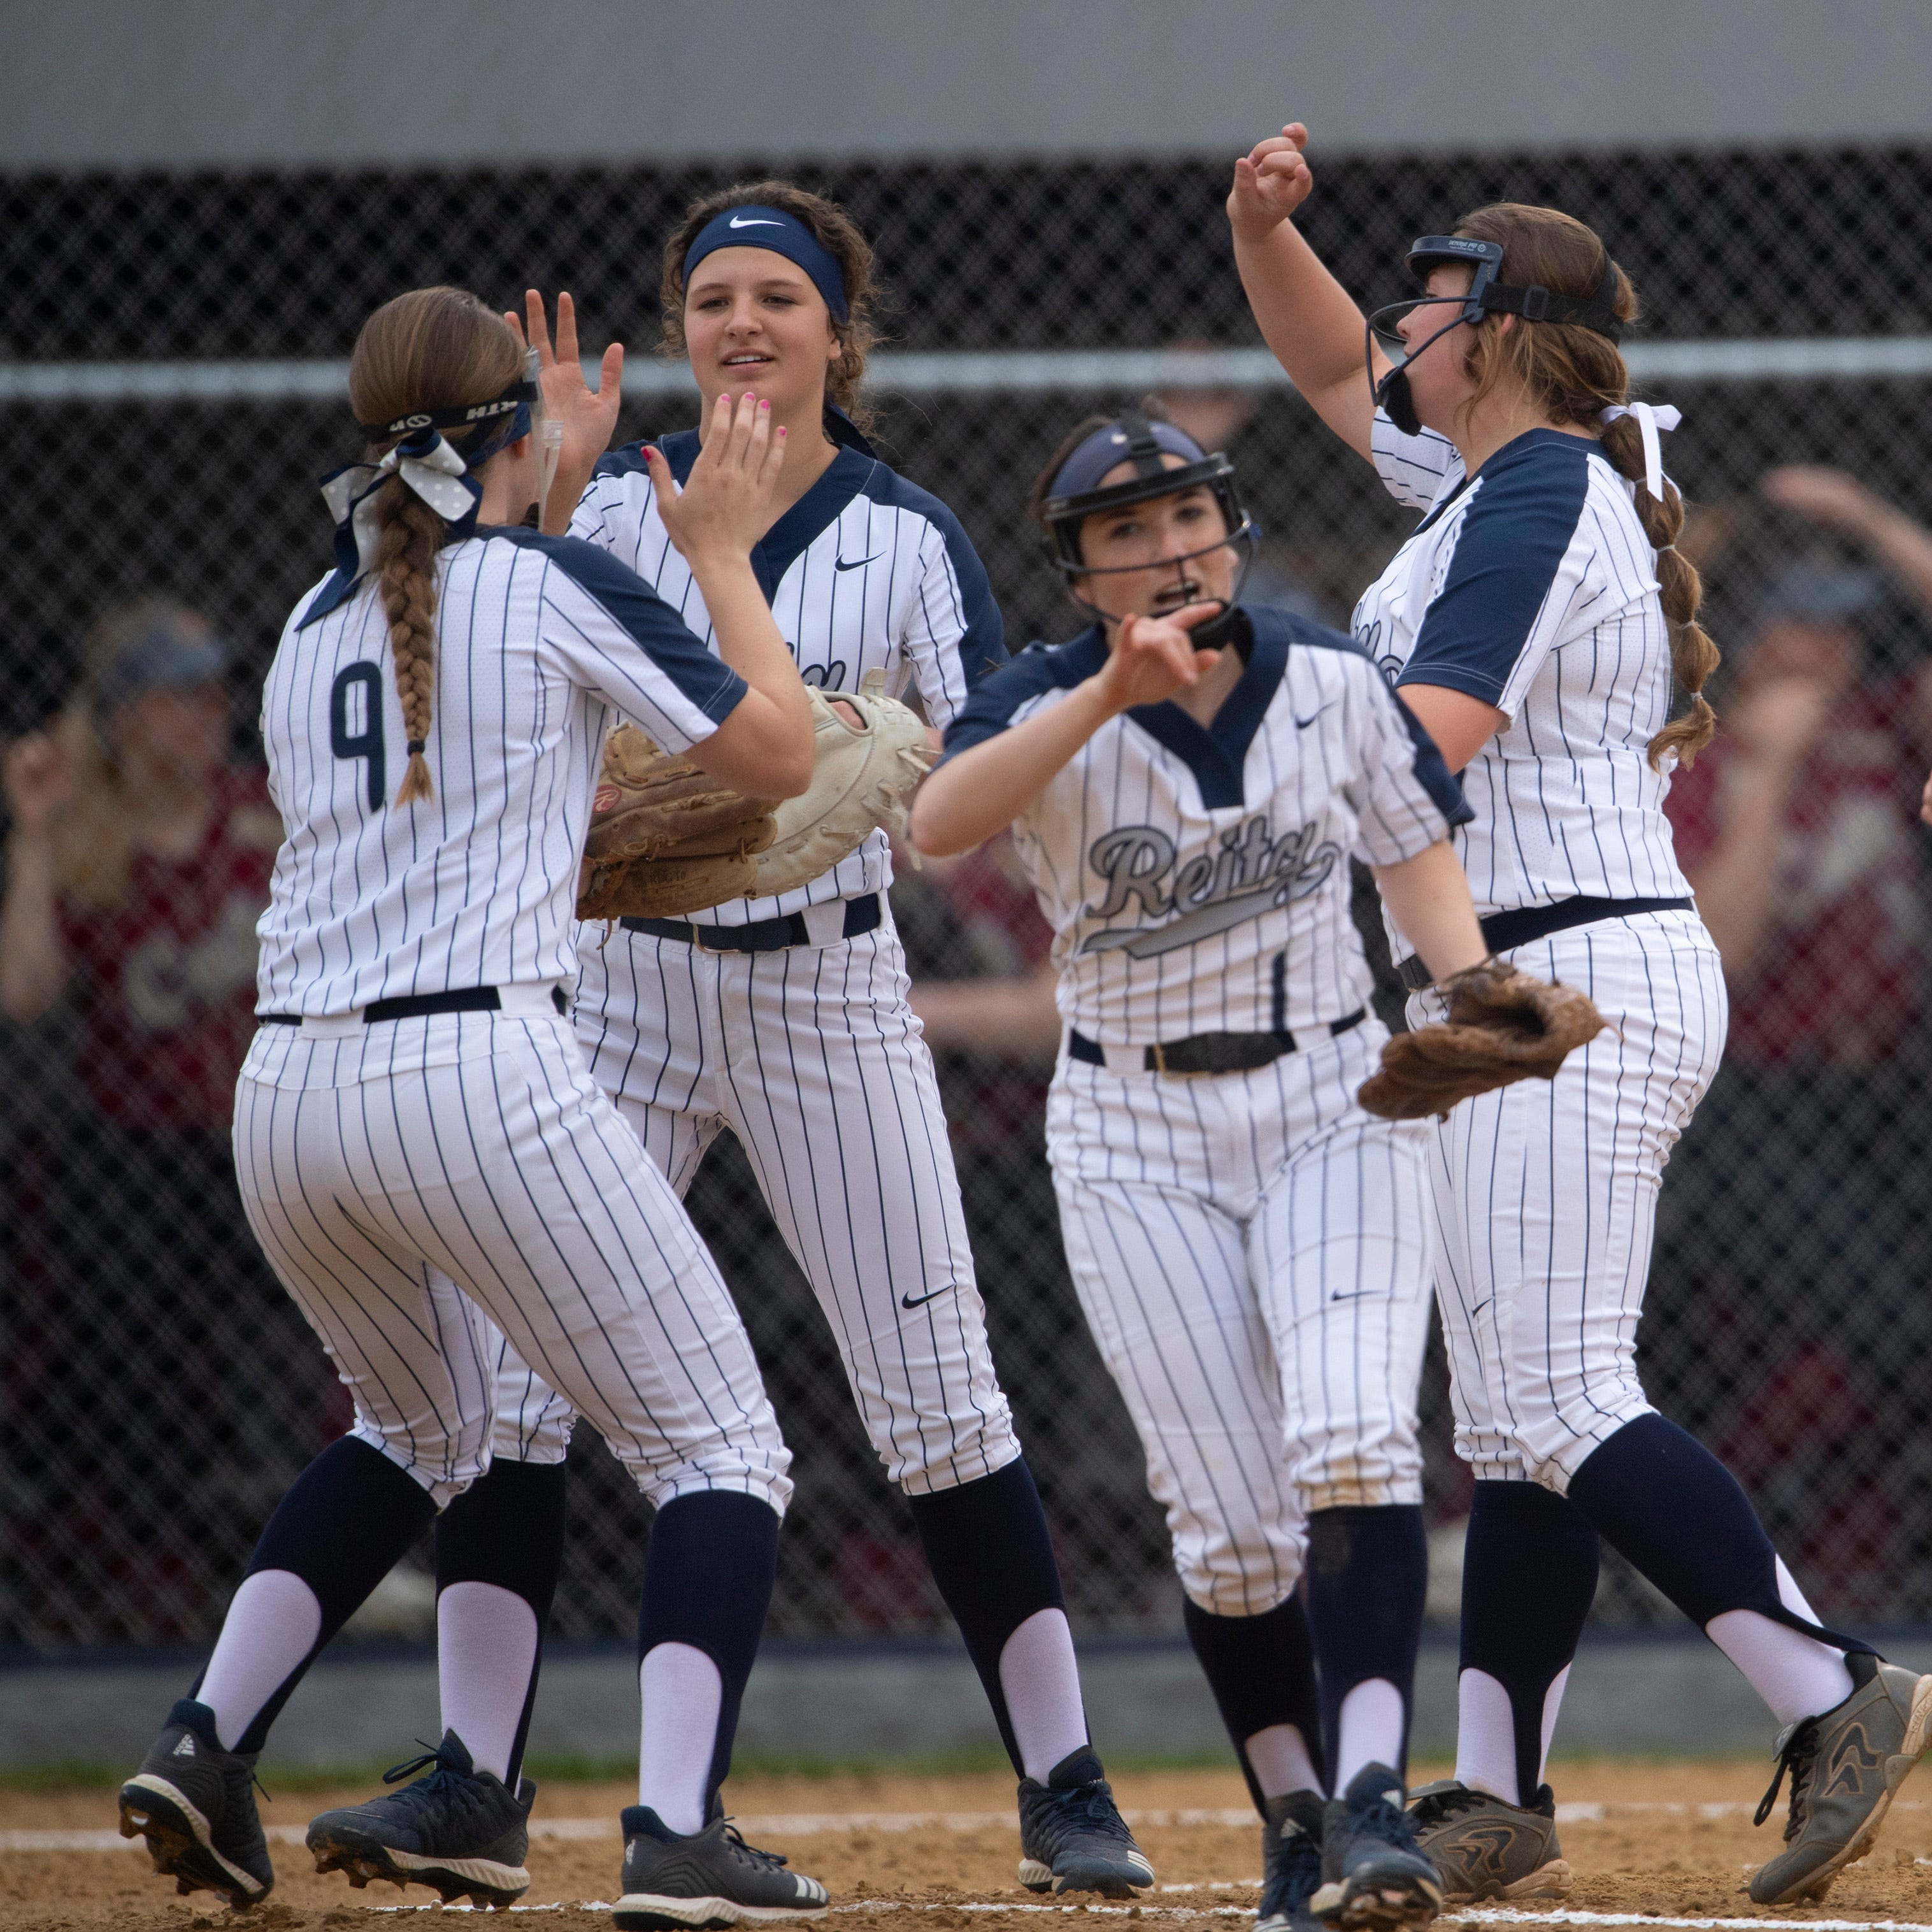 The Reitz infielders celebrate the second out of the first inning against Mater Dei at Reitz Softball Field Thursday evening.